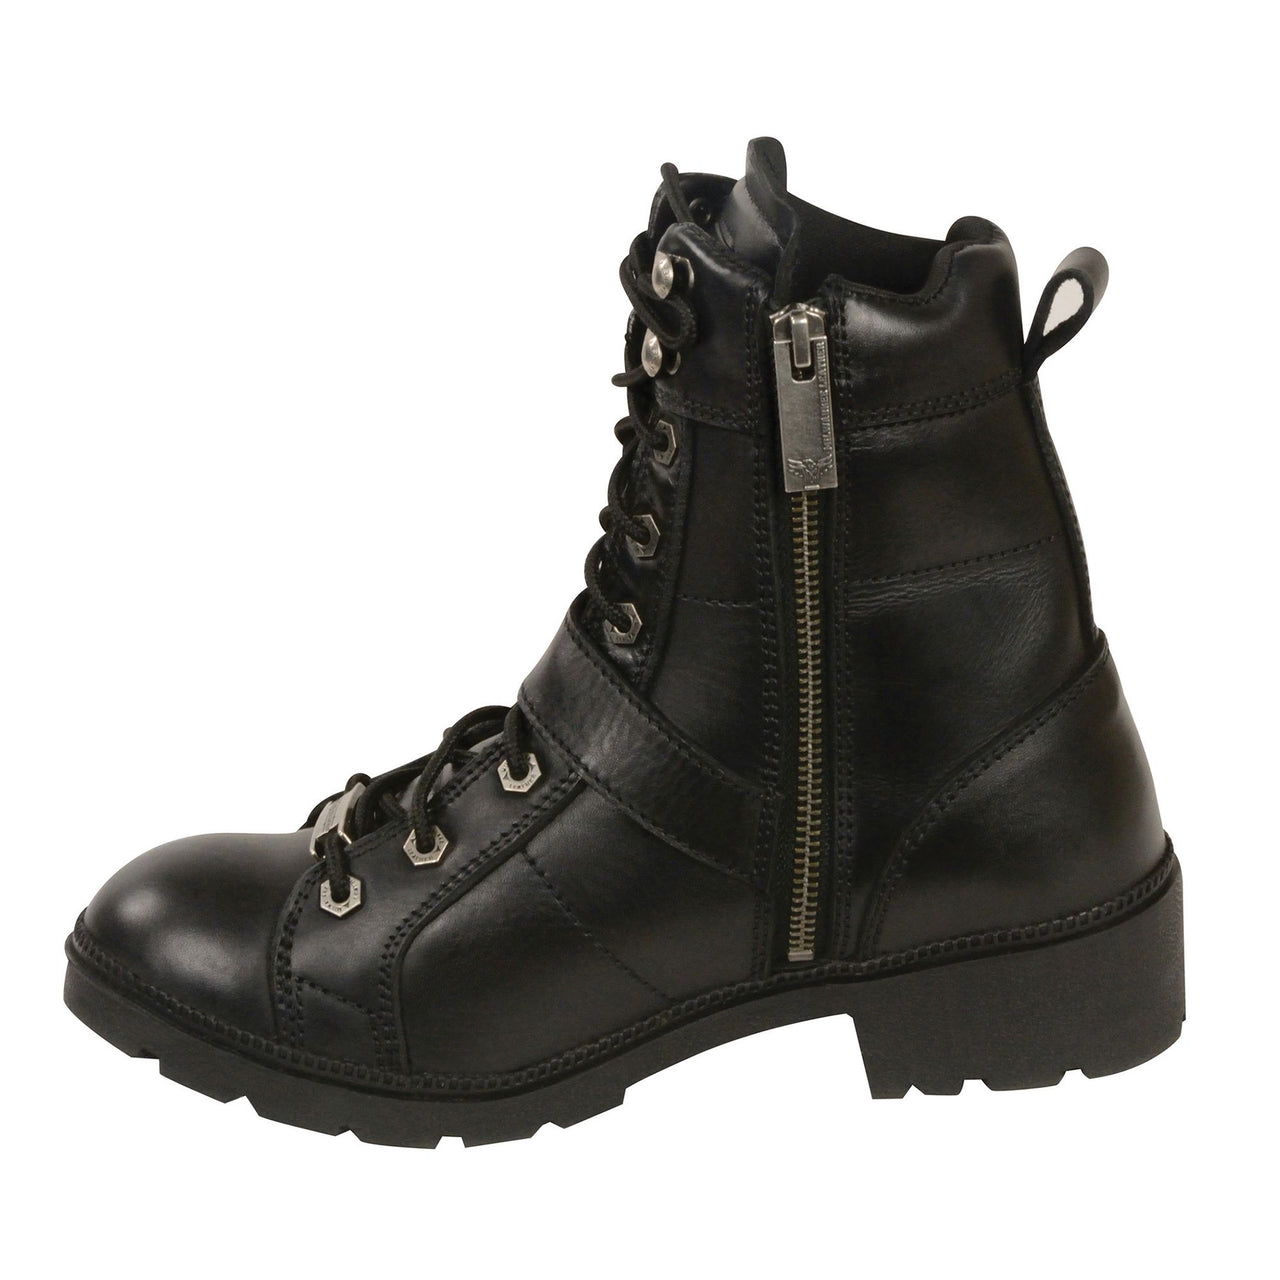 Women's Lace to Toe Side Buckle Leather Boot w/ Plain Toe - HighwayLeather